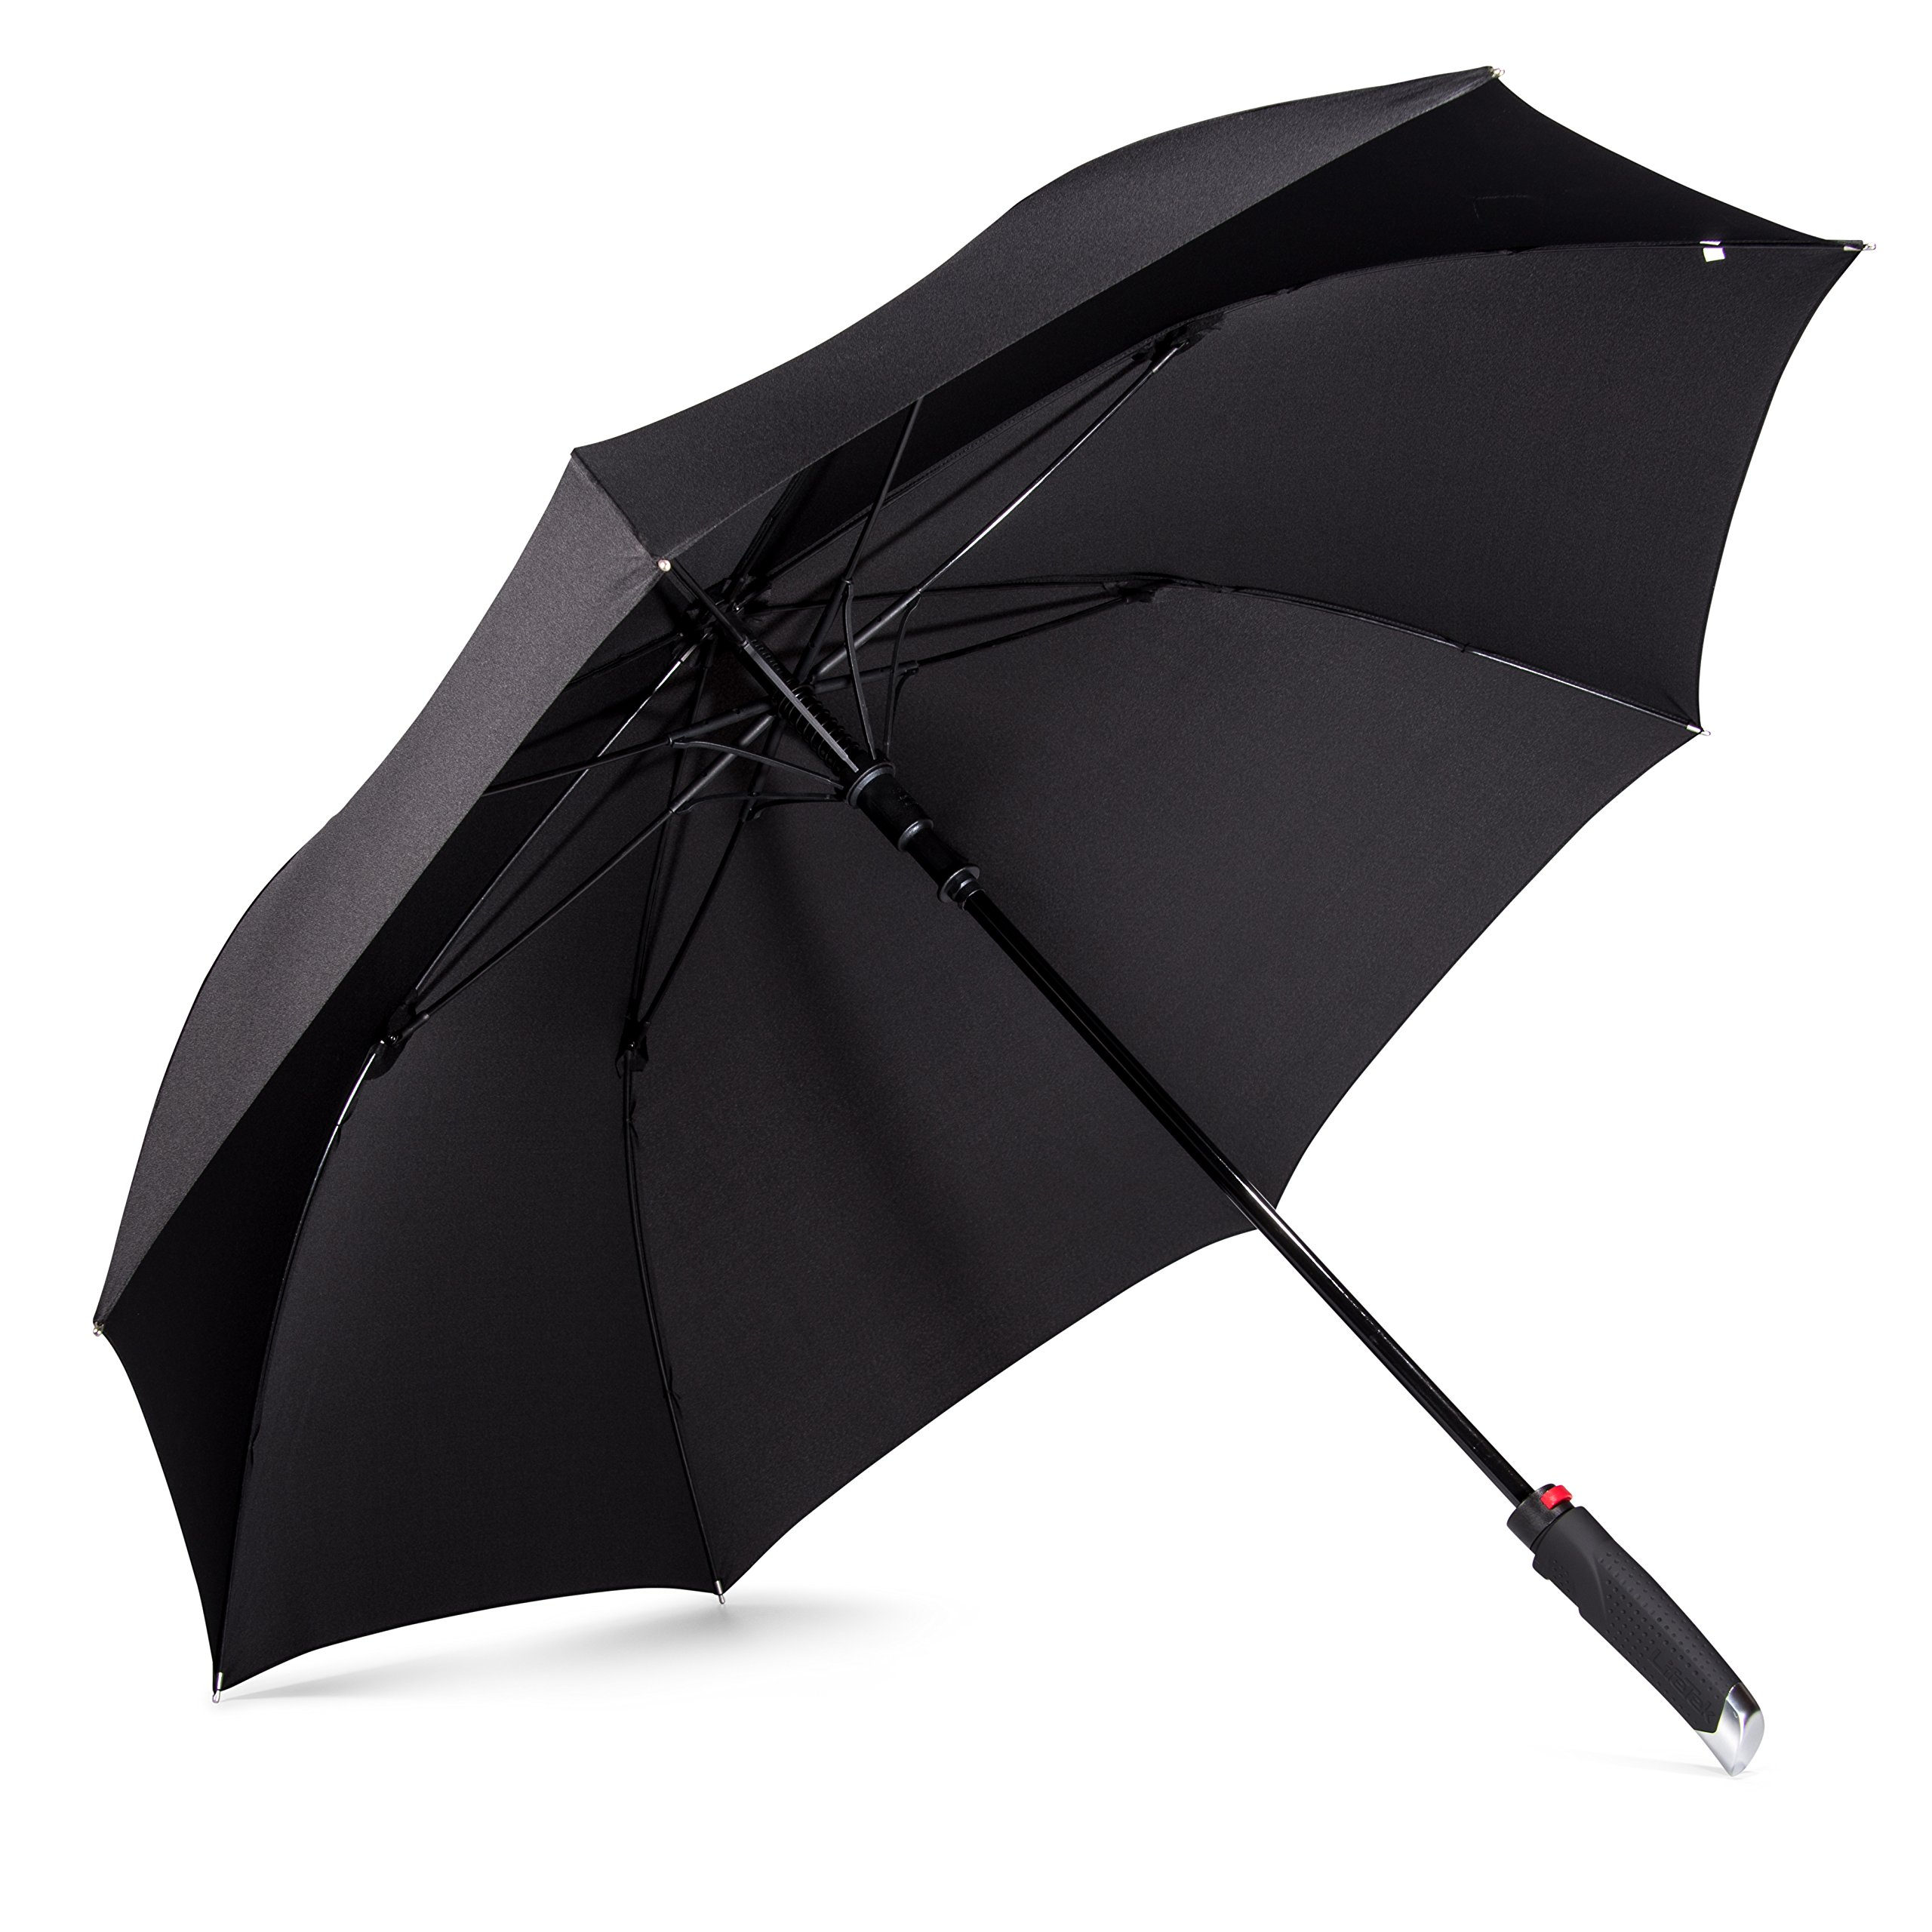 LifeTek New Yorker Umbrella - Extra Large Windproof Umbrella 54 Inch Coverage with Automatic Open Full Size Quick Drying Teflon Canopy